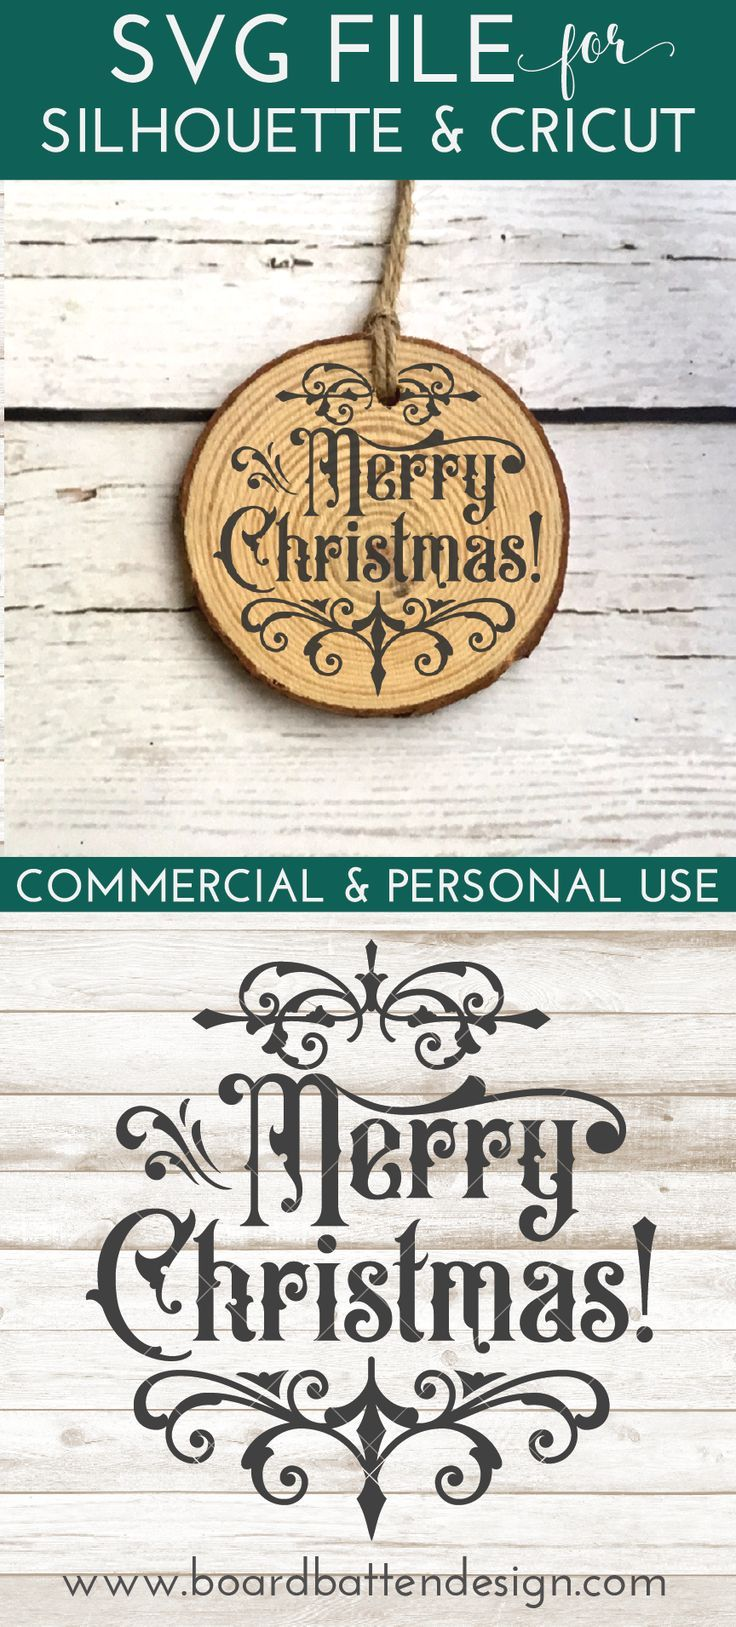 Gothic Christmas Ornament SVG File Merry Christmas in